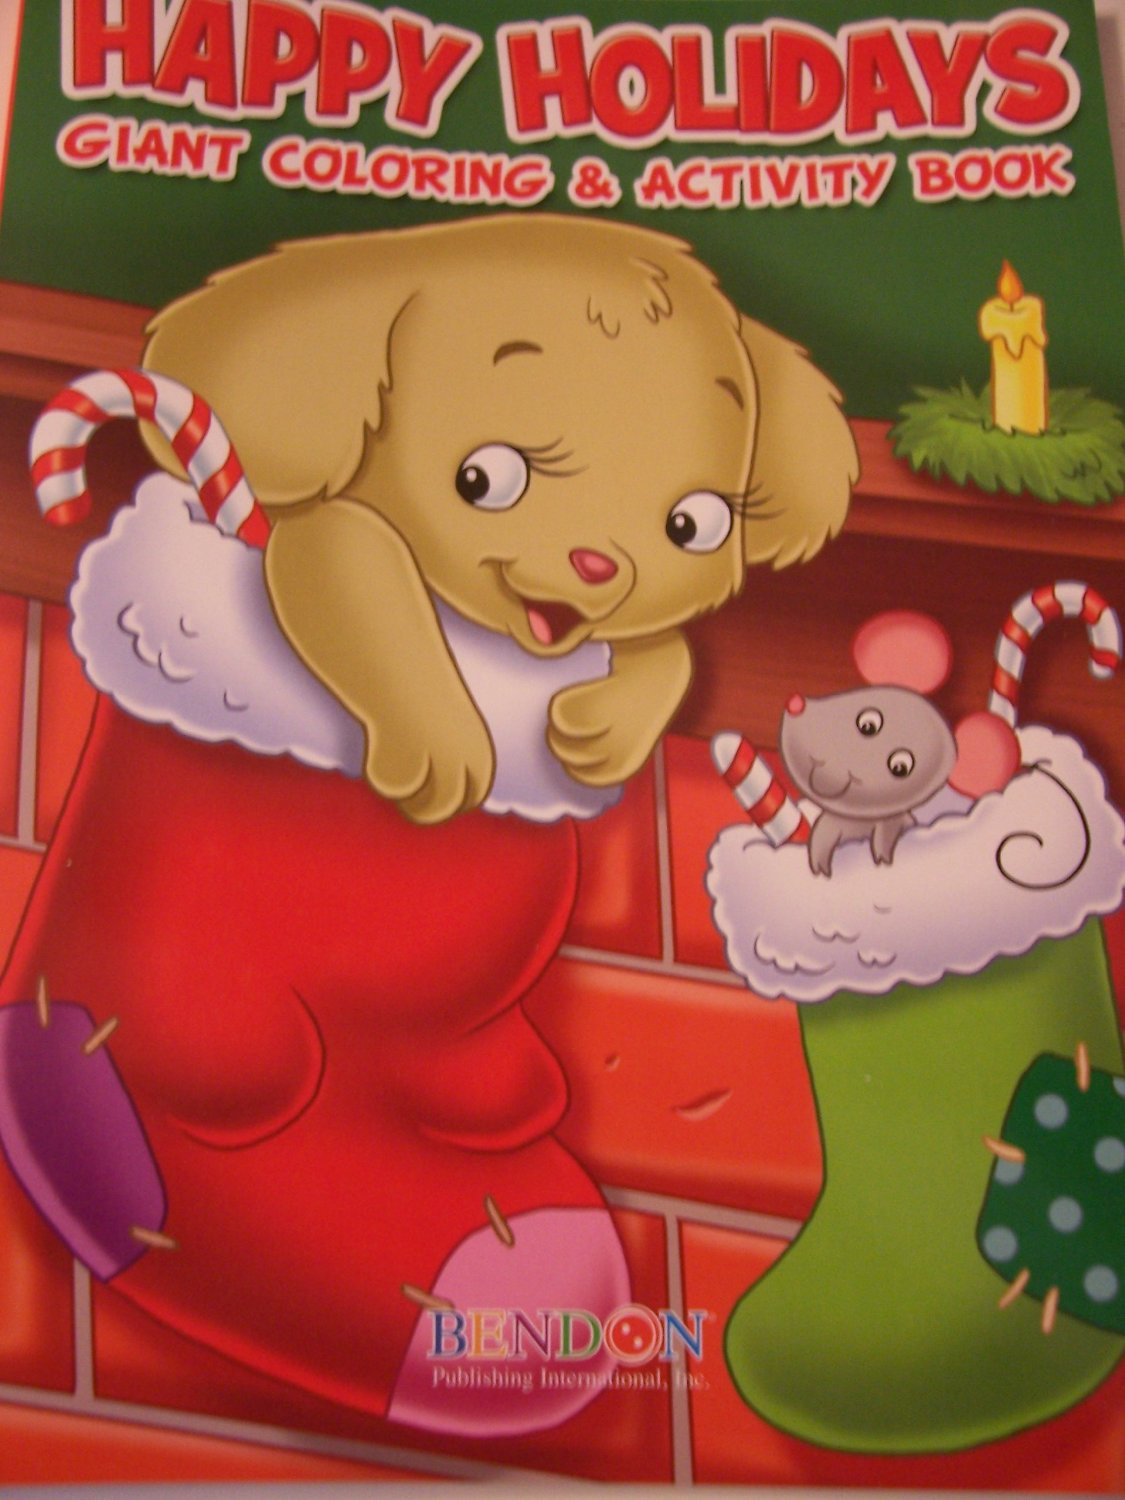 Happy Holidays 160 Page Giant Coloring and Activity Book ~ Christmas Edition (Puppy and Mouse in Stockings)